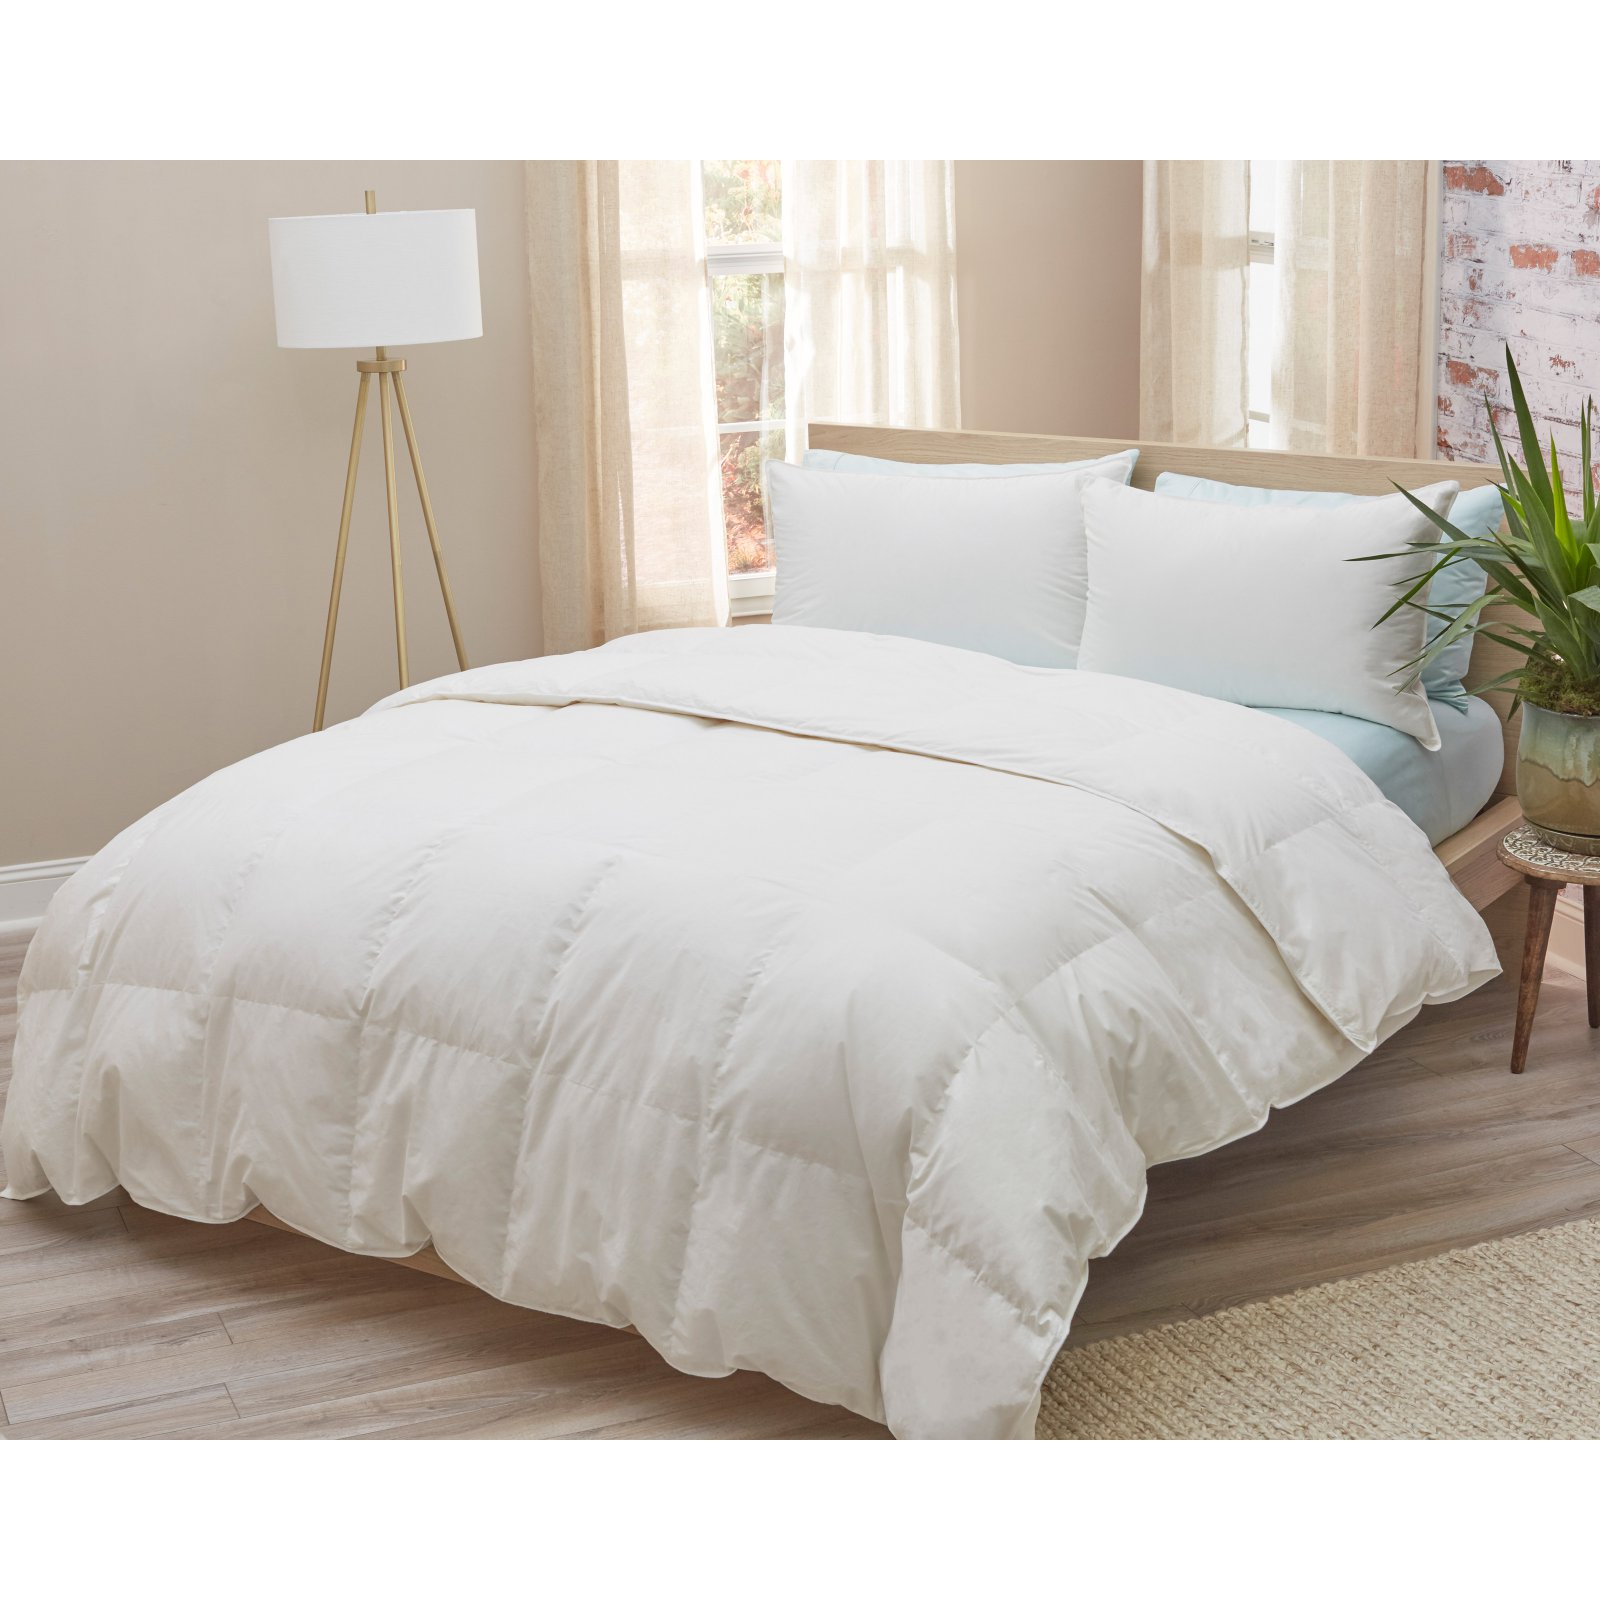 Amberly Bedding White Down Comforter - Summer Weight Full/Queen